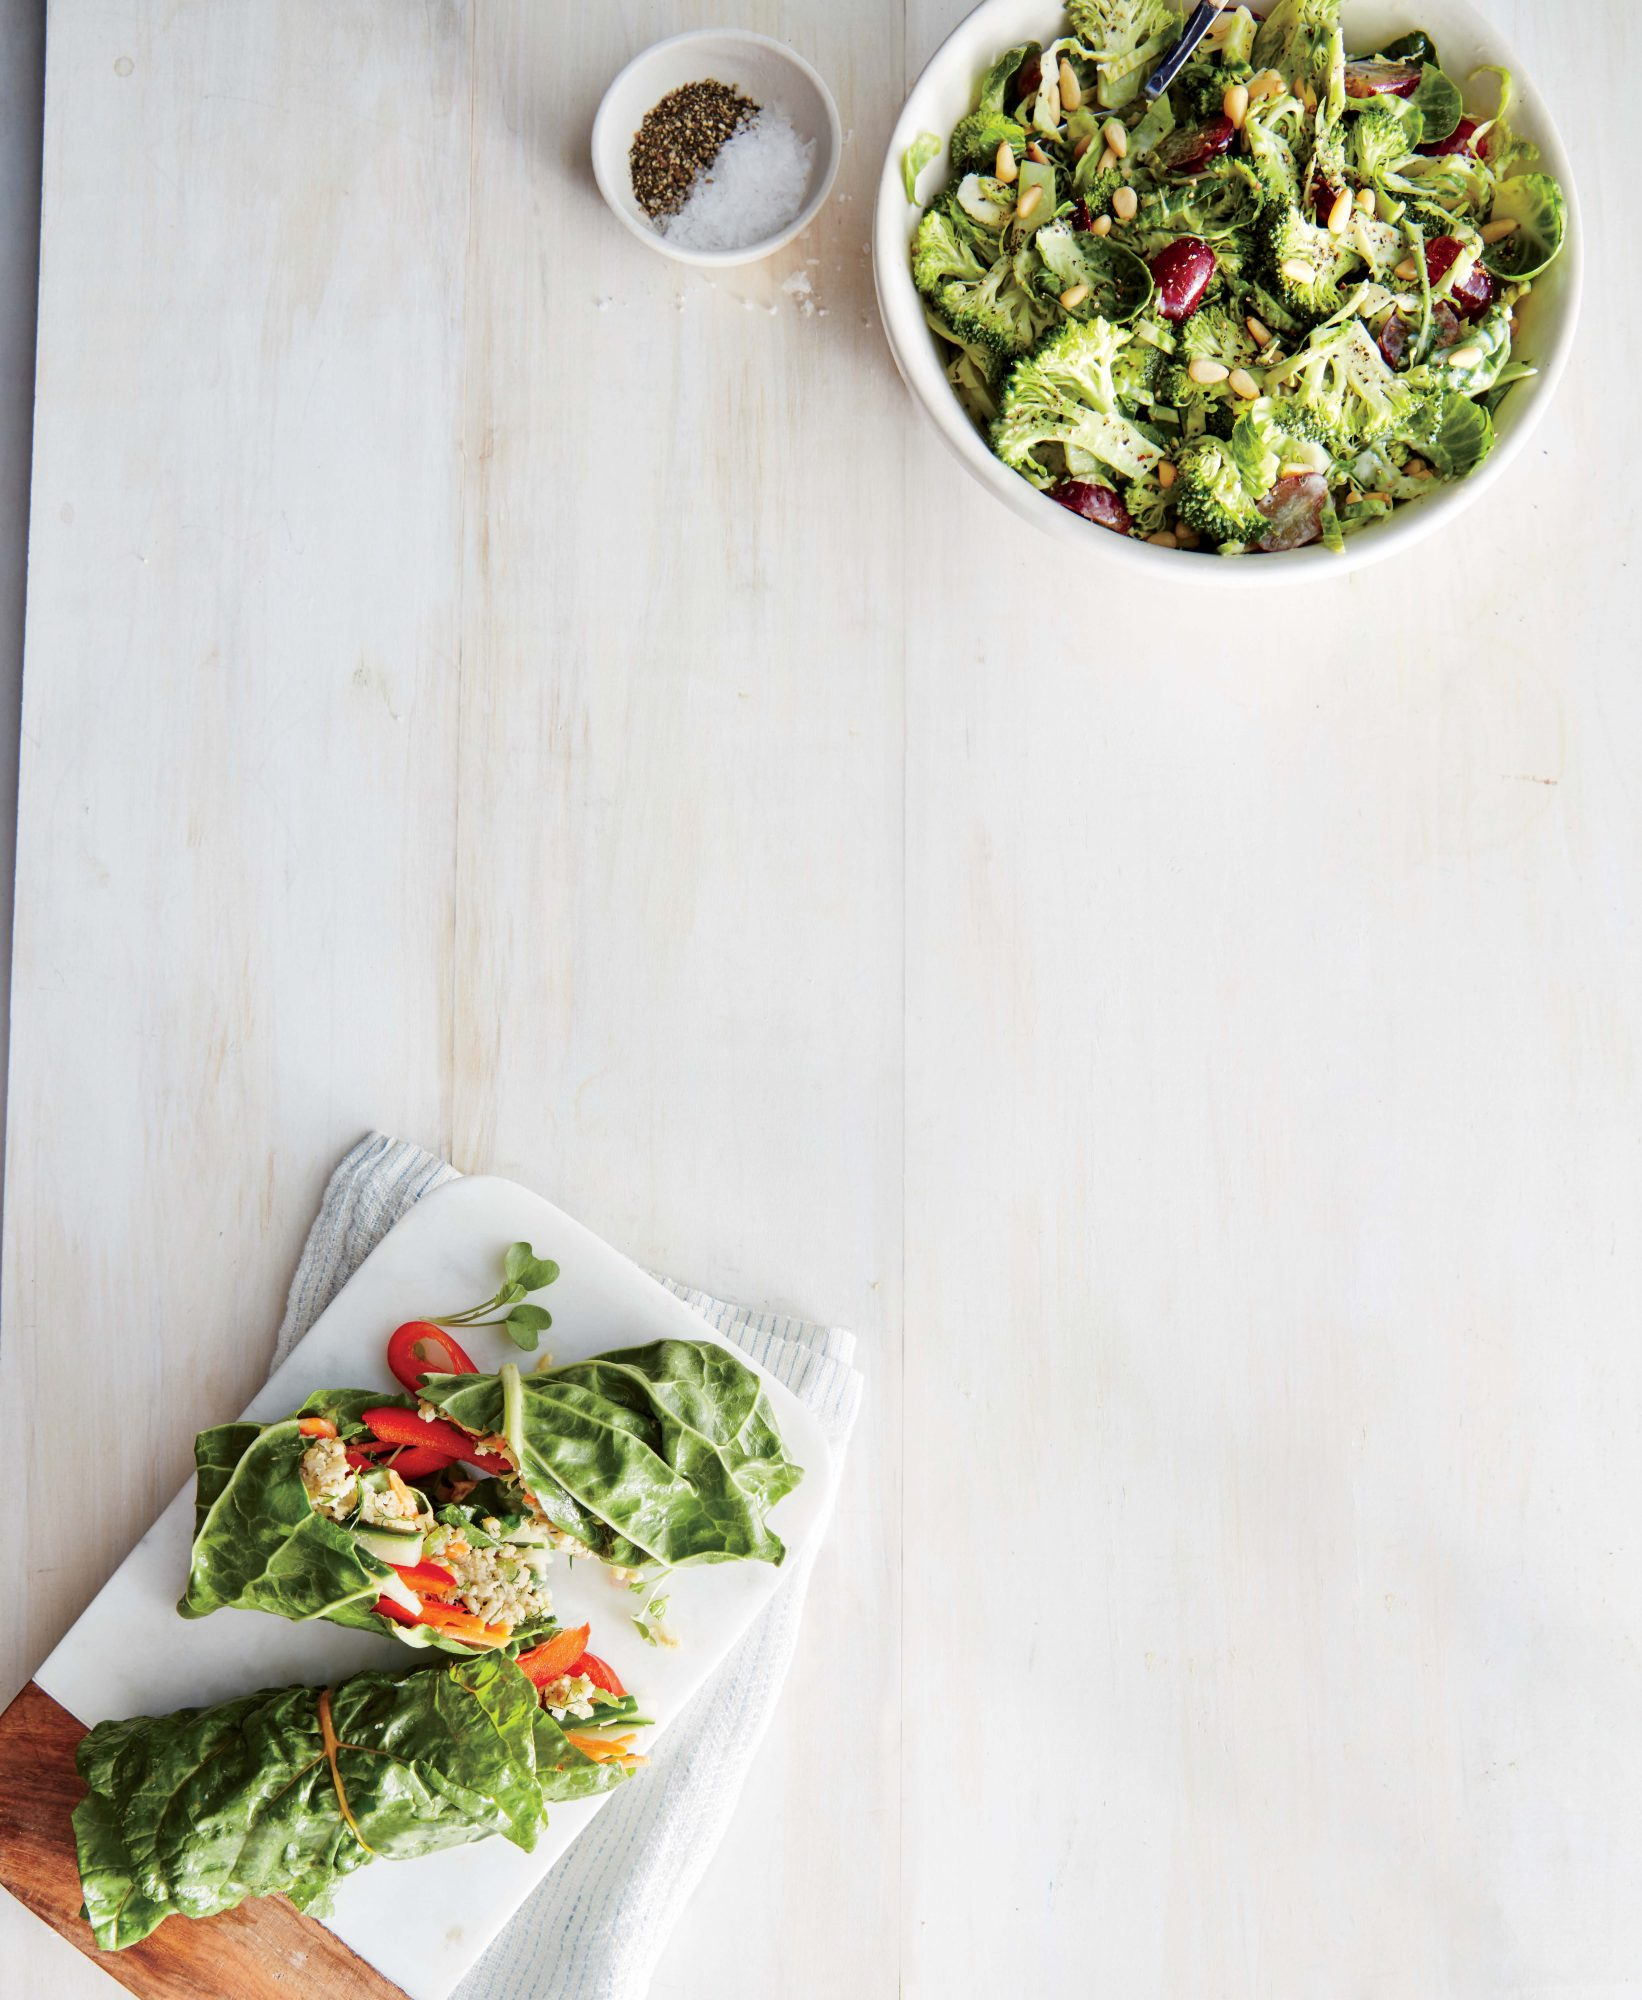 Shaved Broccoli and Brussels Sprouts Slaw